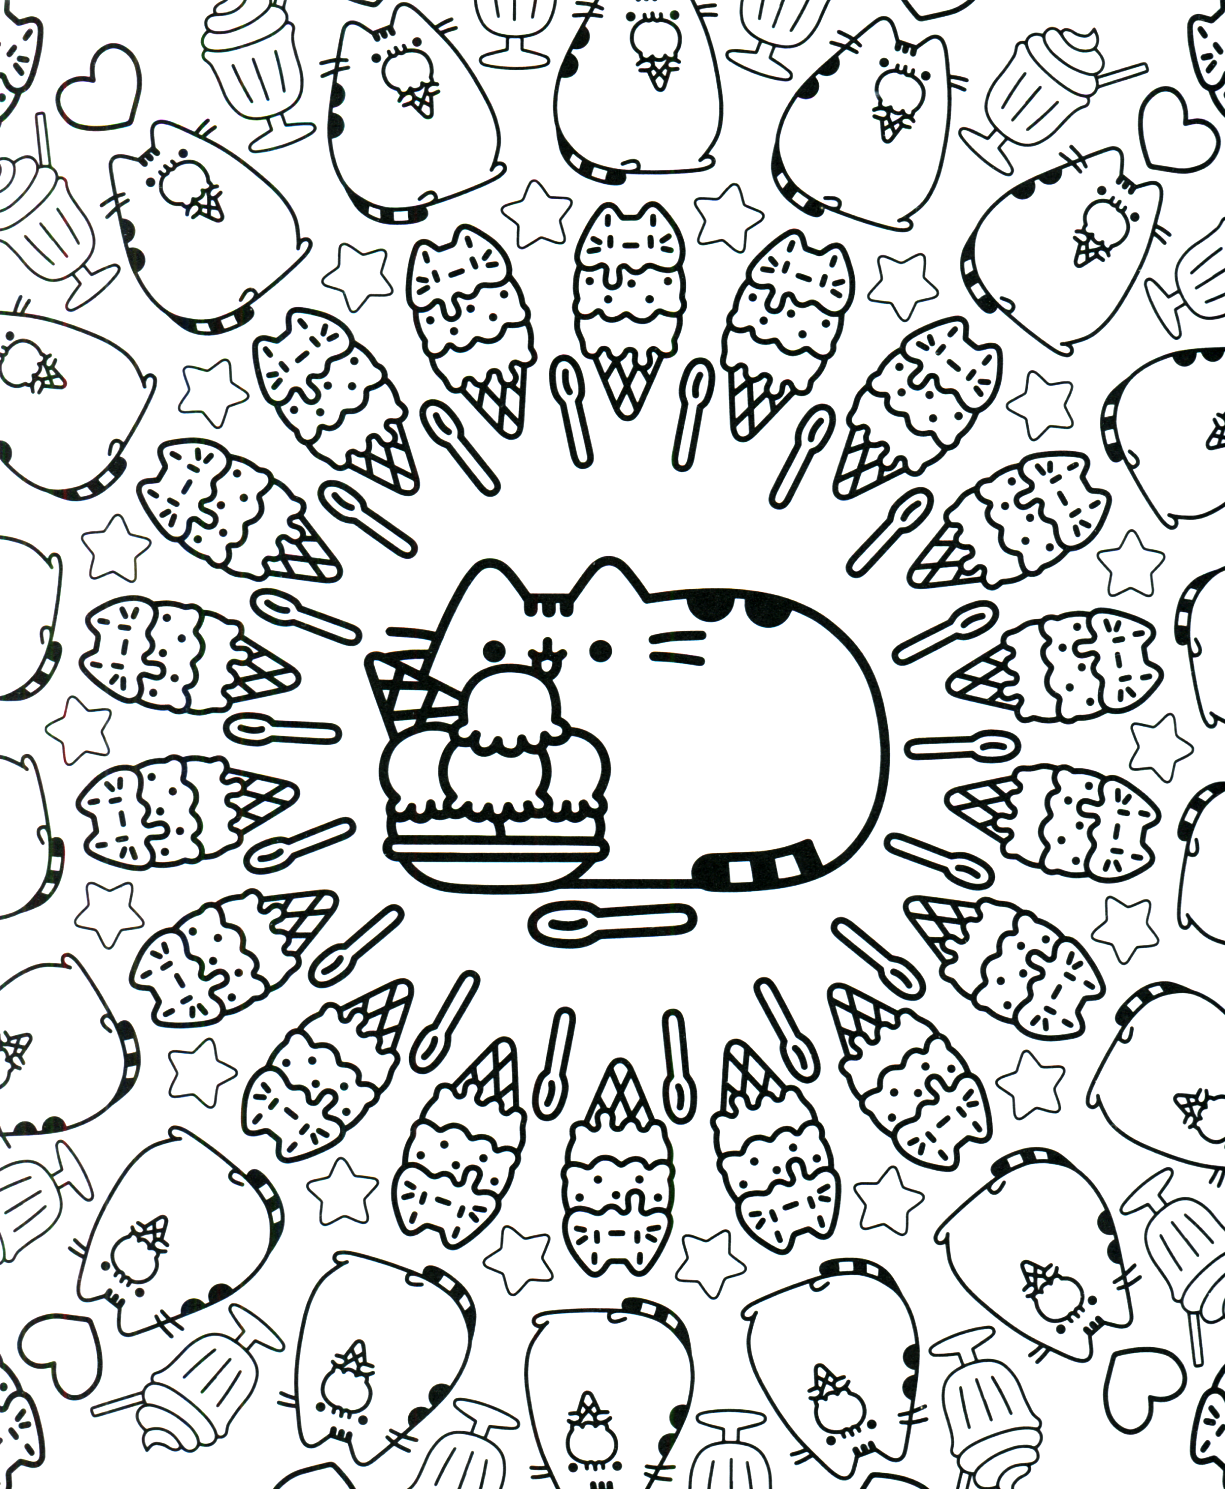 Pusheen Coloring Book Pusheen Pusheen the Cat | Laminas para ...